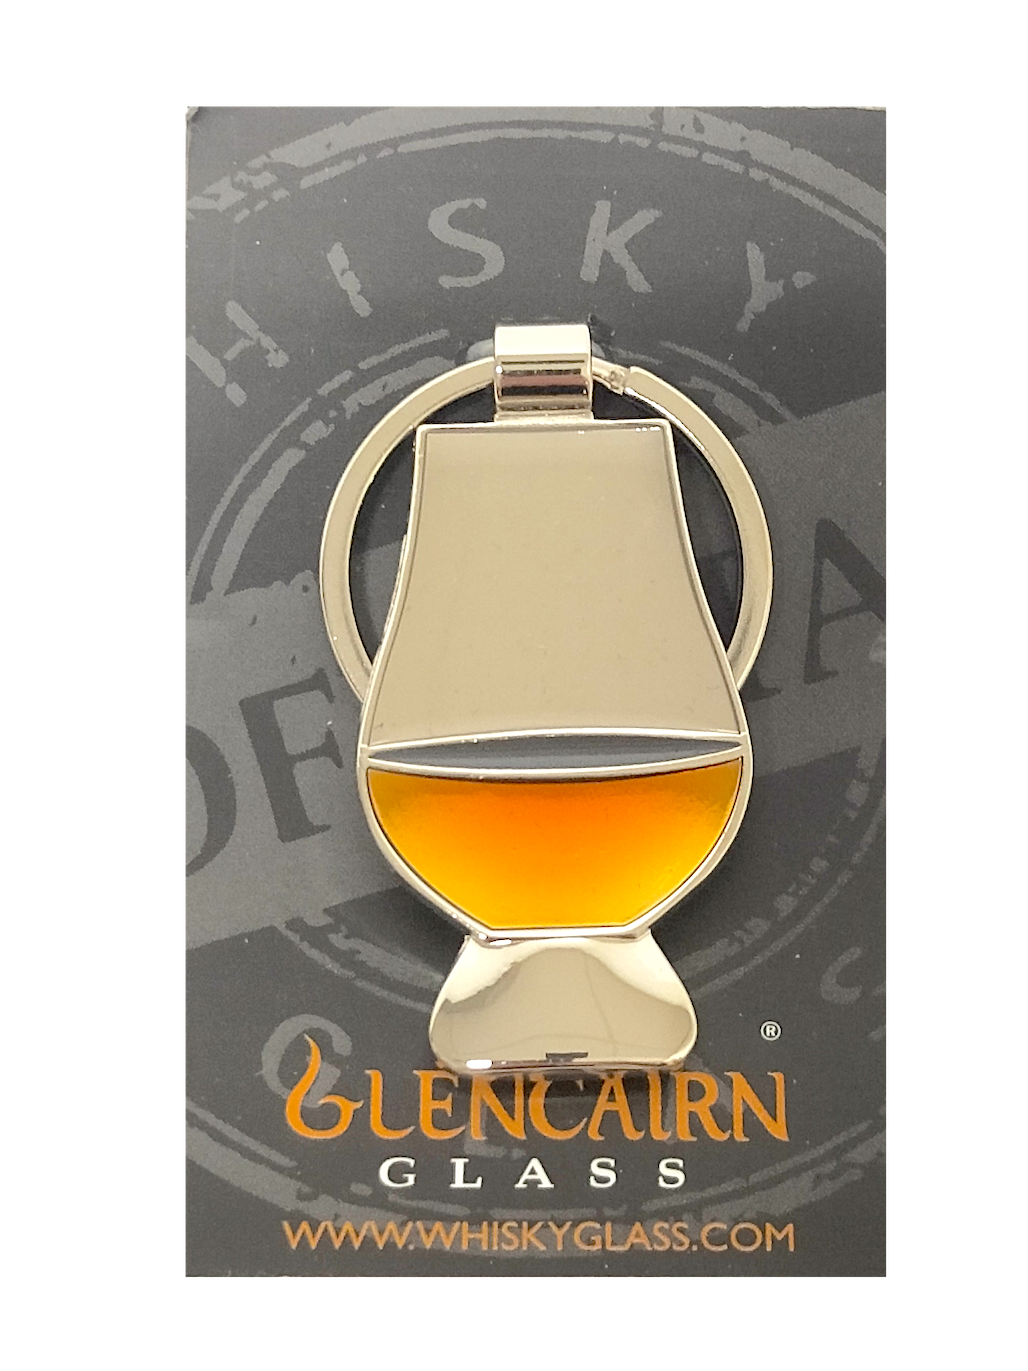 Glencairn Whisky Glass Keychain